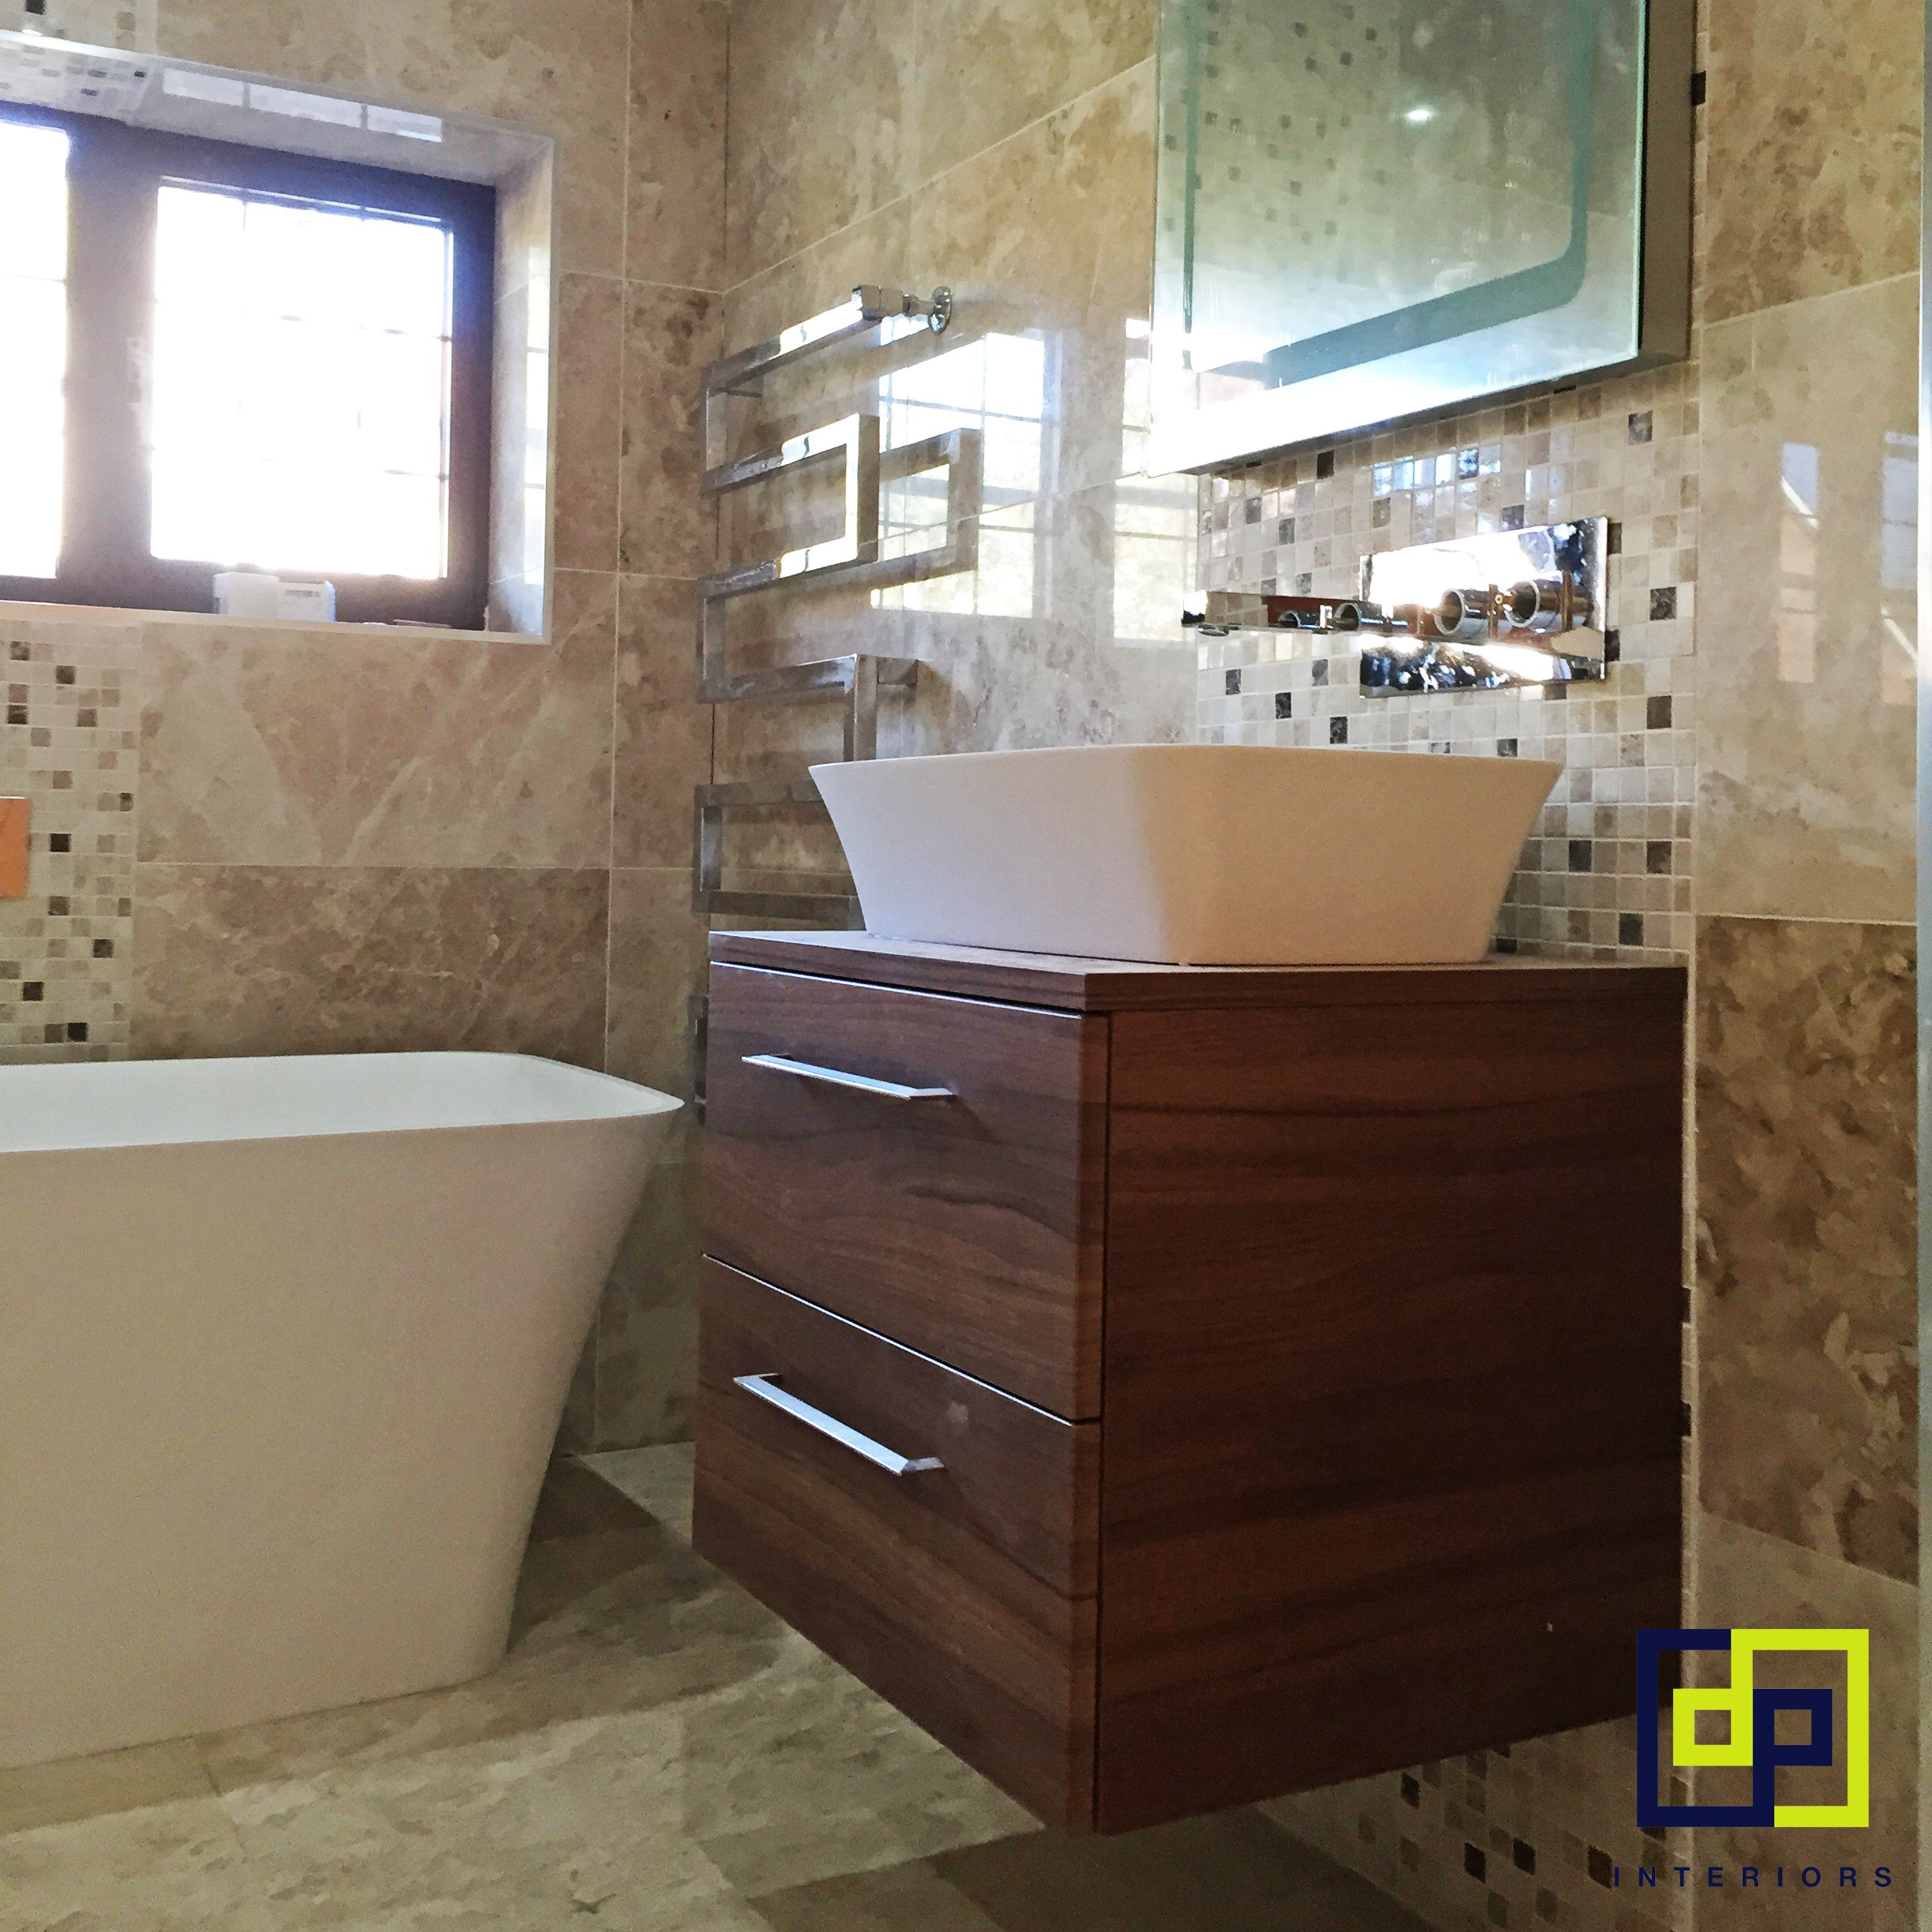 Minimalist gloss white vanity unit 600 800 or 1000mm - Gloss Beige Tiles With Mosaics With Walnut Vanity Unit Sit On Basin